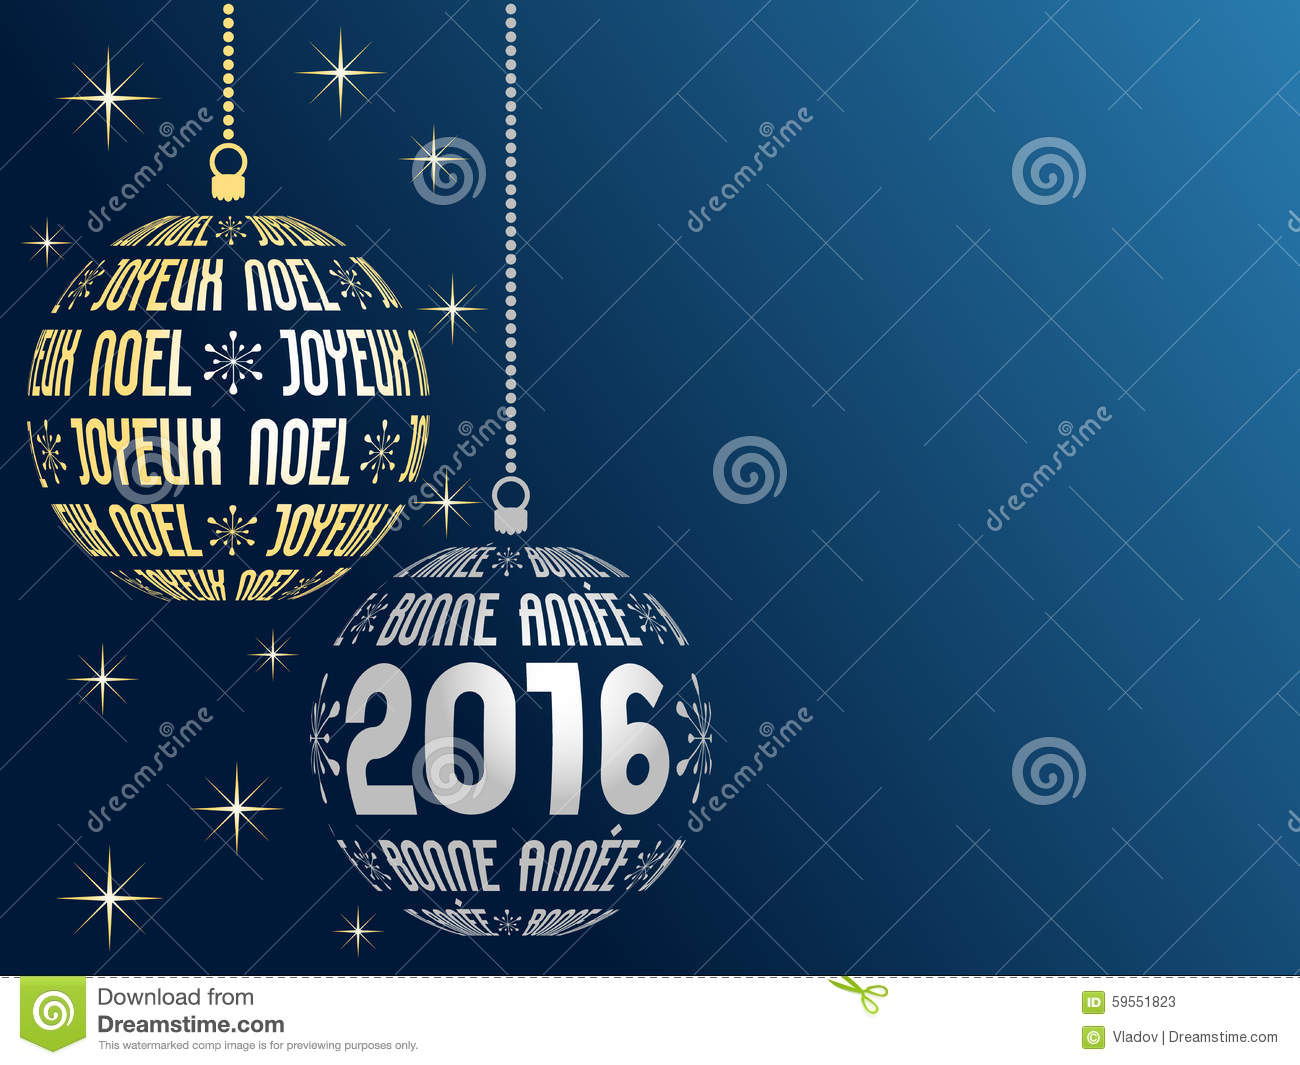 french merry christmas and happy new year 2016 background. Black Bedroom Furniture Sets. Home Design Ideas